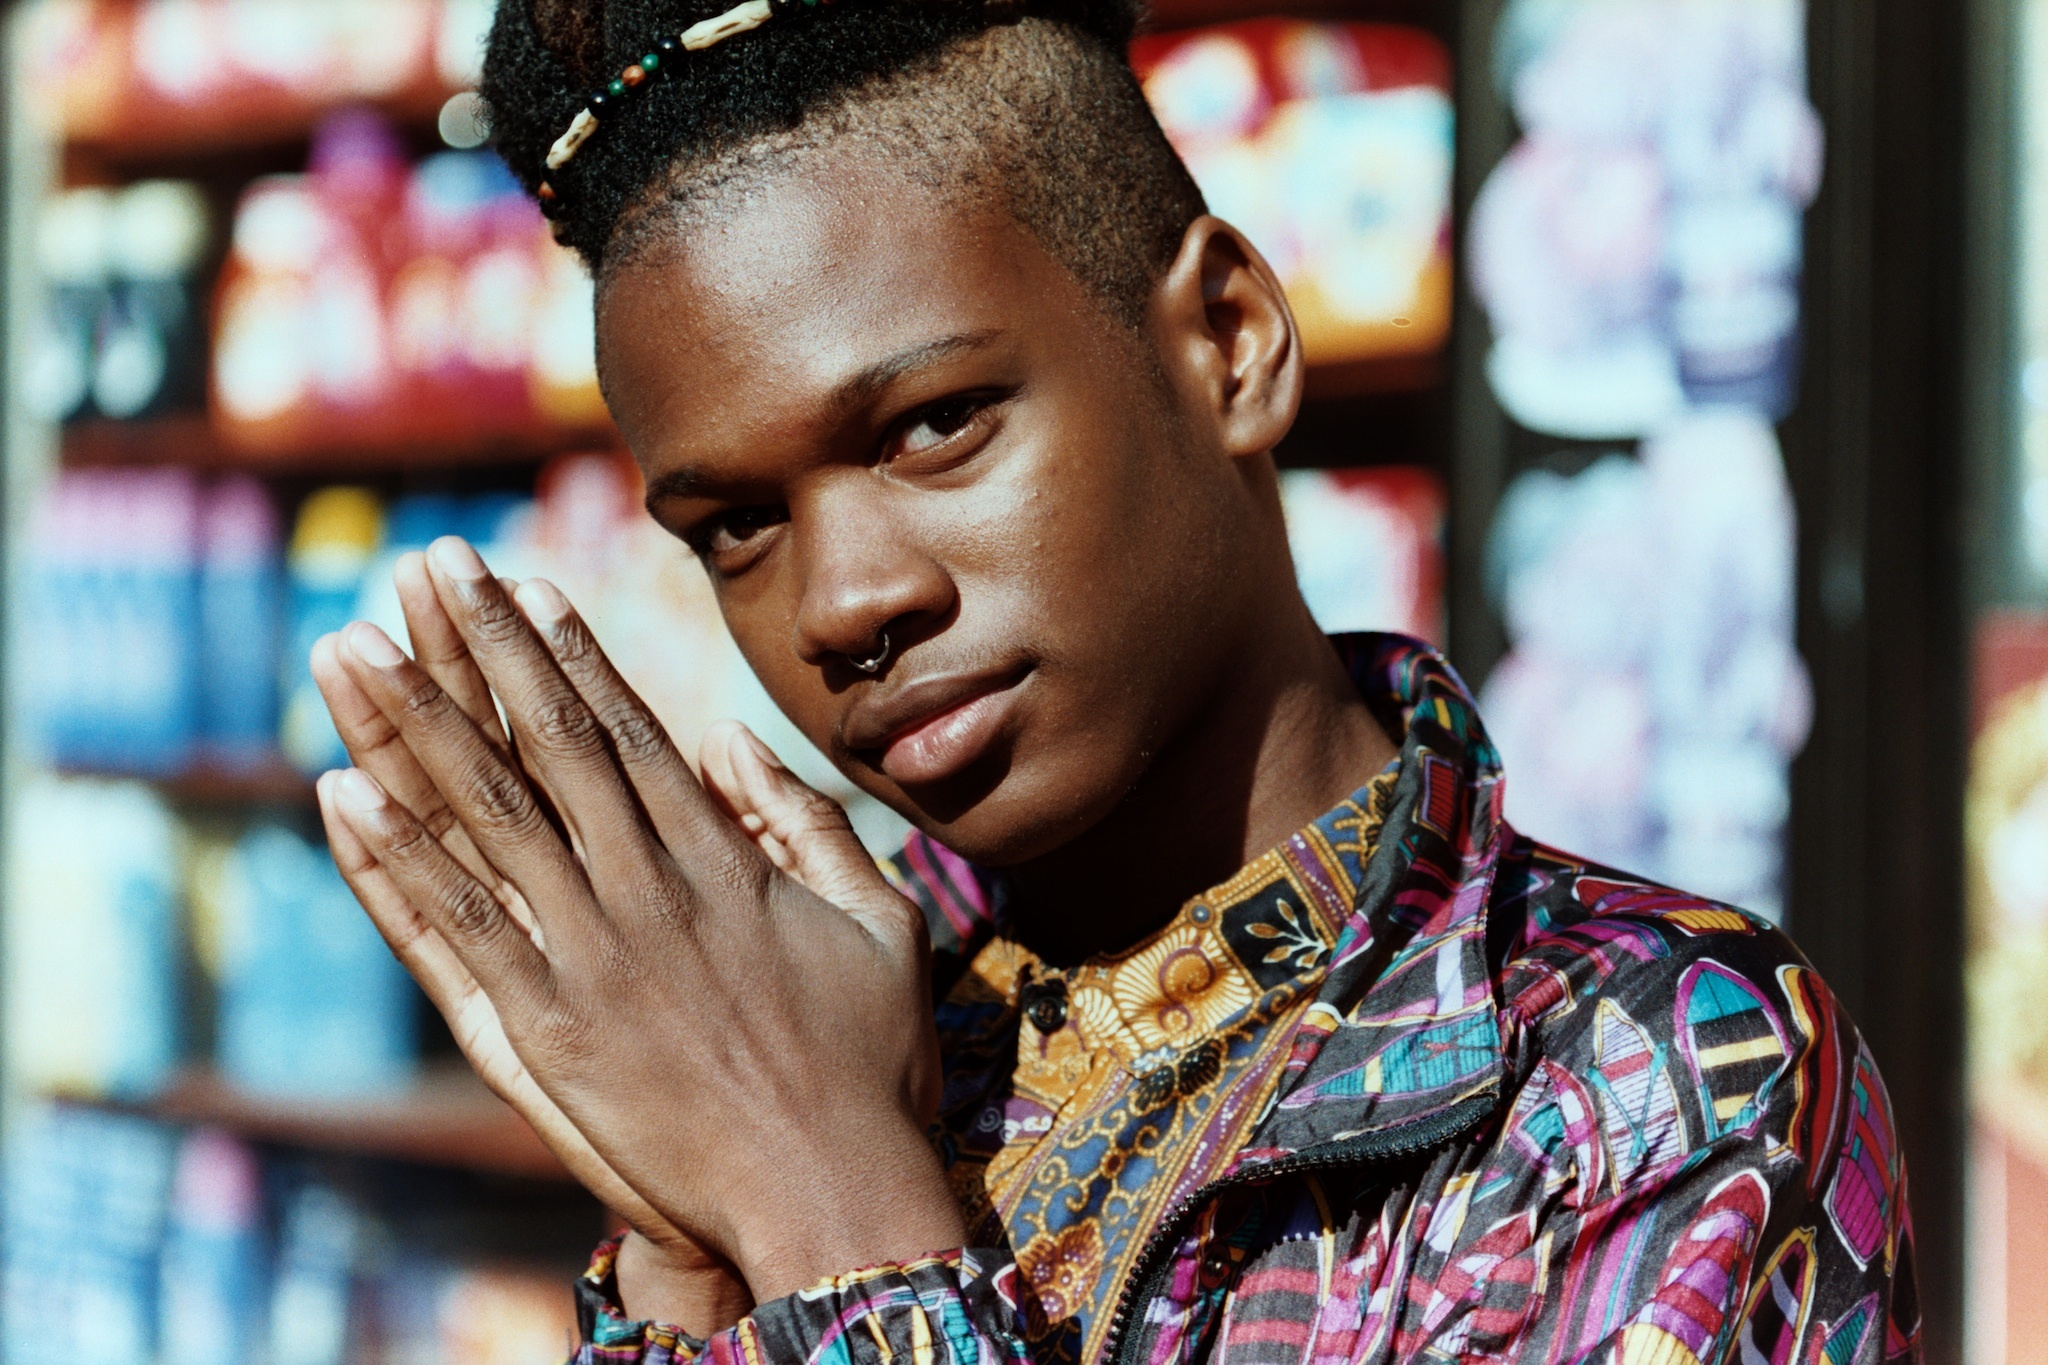 Shamir on growing up punk in Vegas, Muppet fandom and knitting